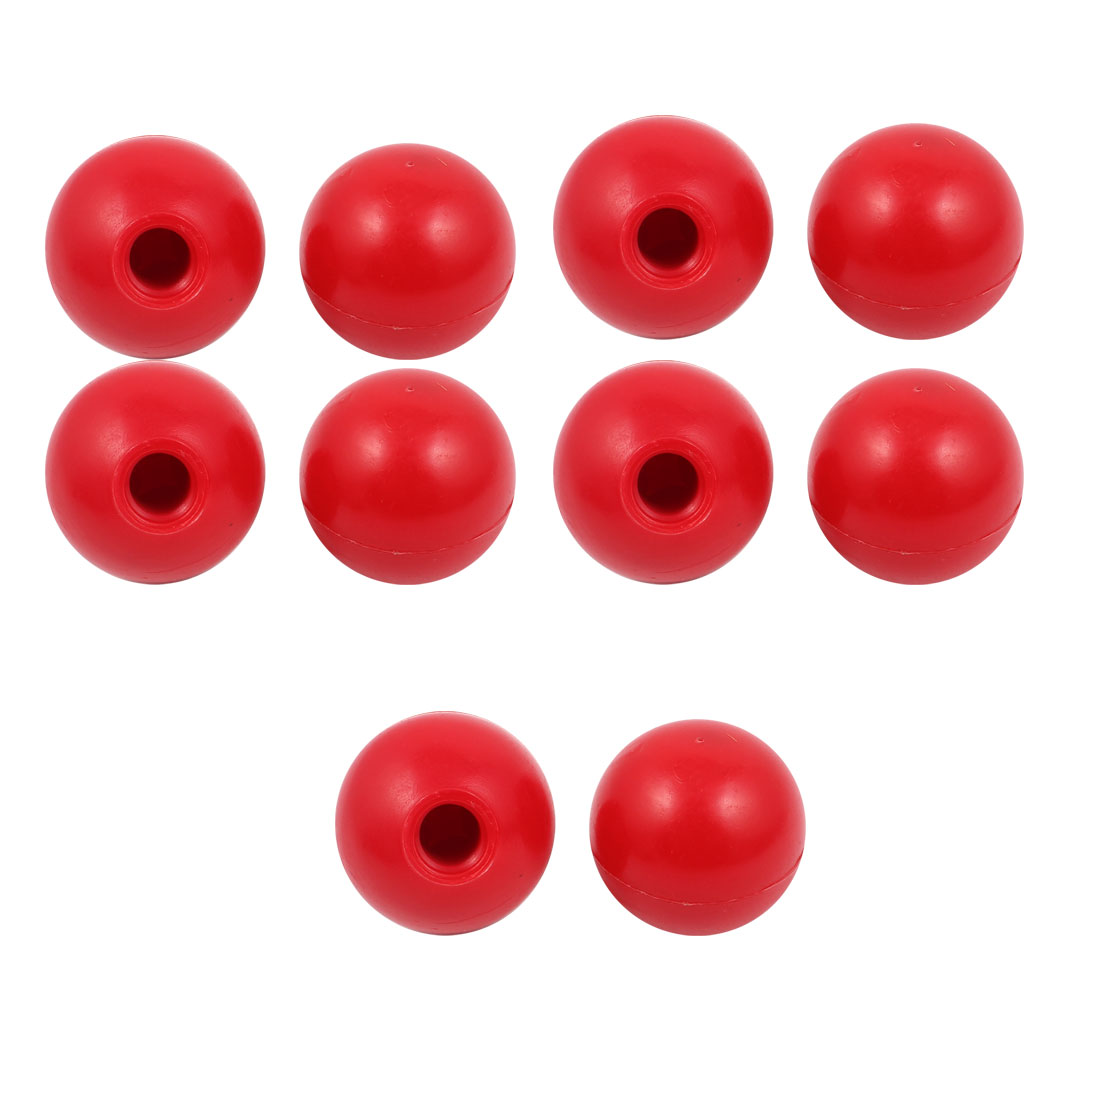 10 Pcs M12 x 40mm Plastic Ball Machine Tool Accessories Console Handle Red